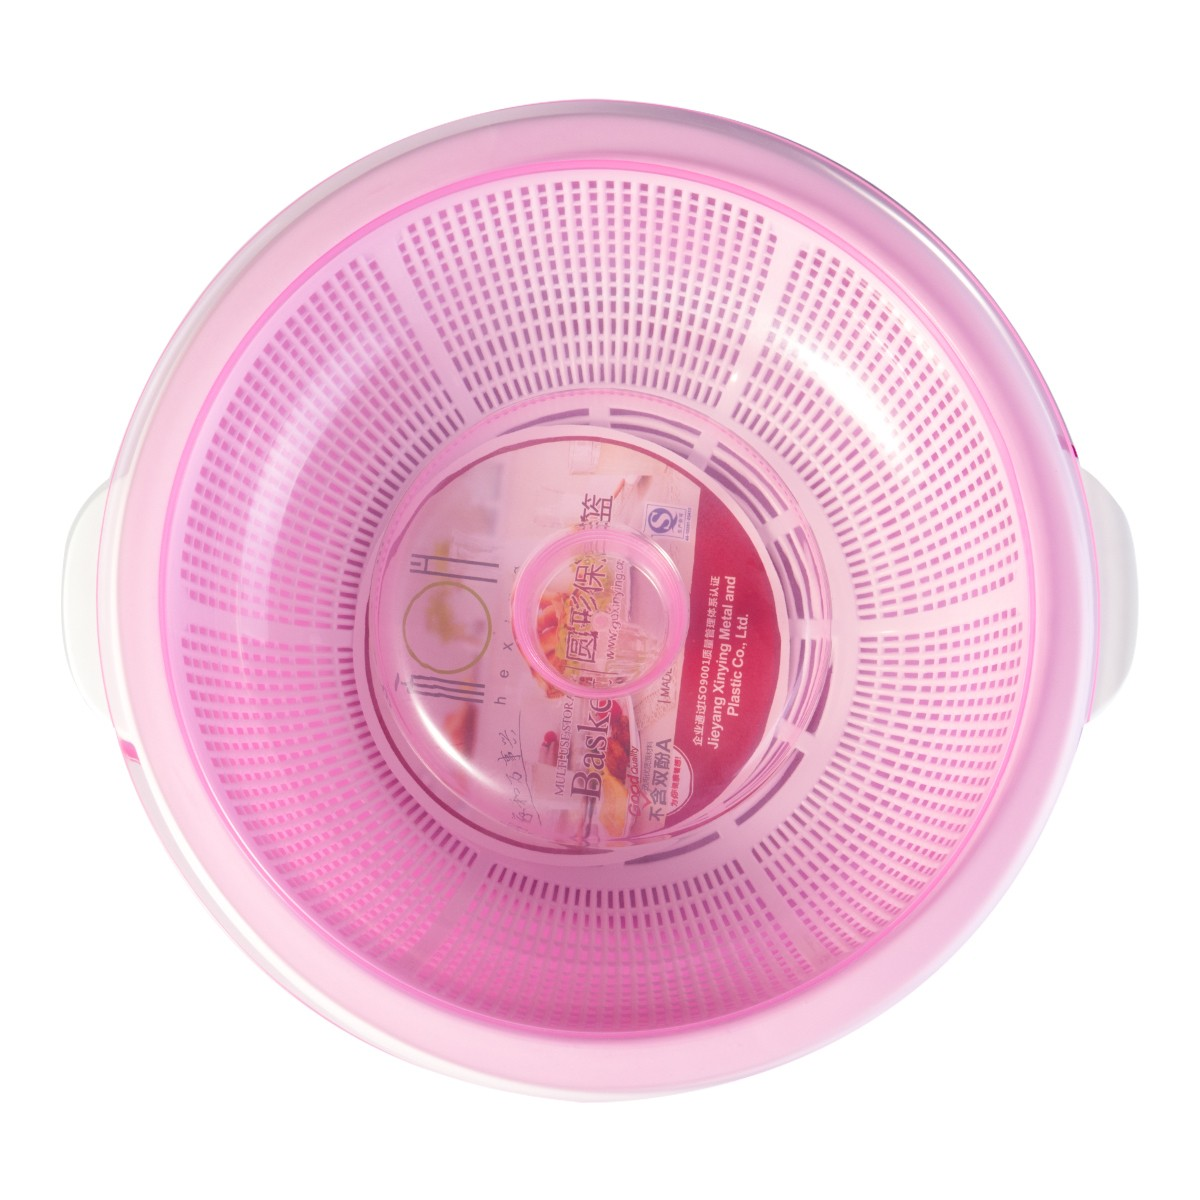 Yamibuy.com:Customer reviews:HE XING Multi-Use Storage Basket Double Layer with Cover 28cm